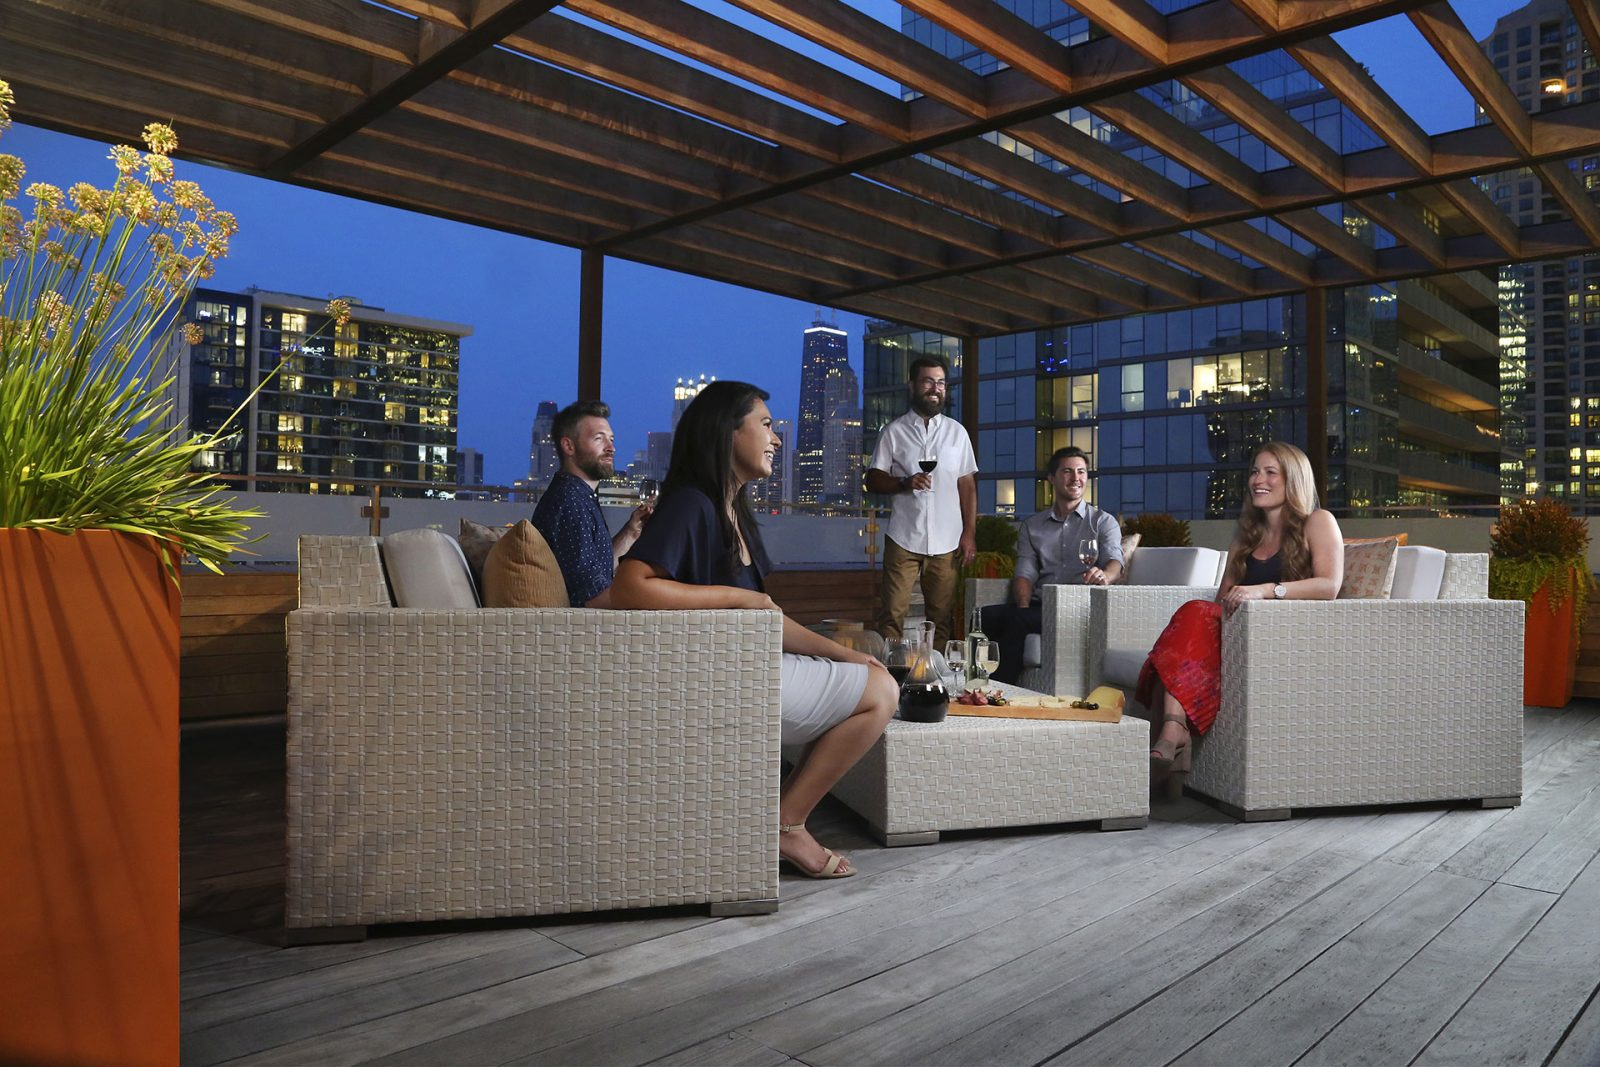 Award Winning Roof Deck Design Build Company Chicago